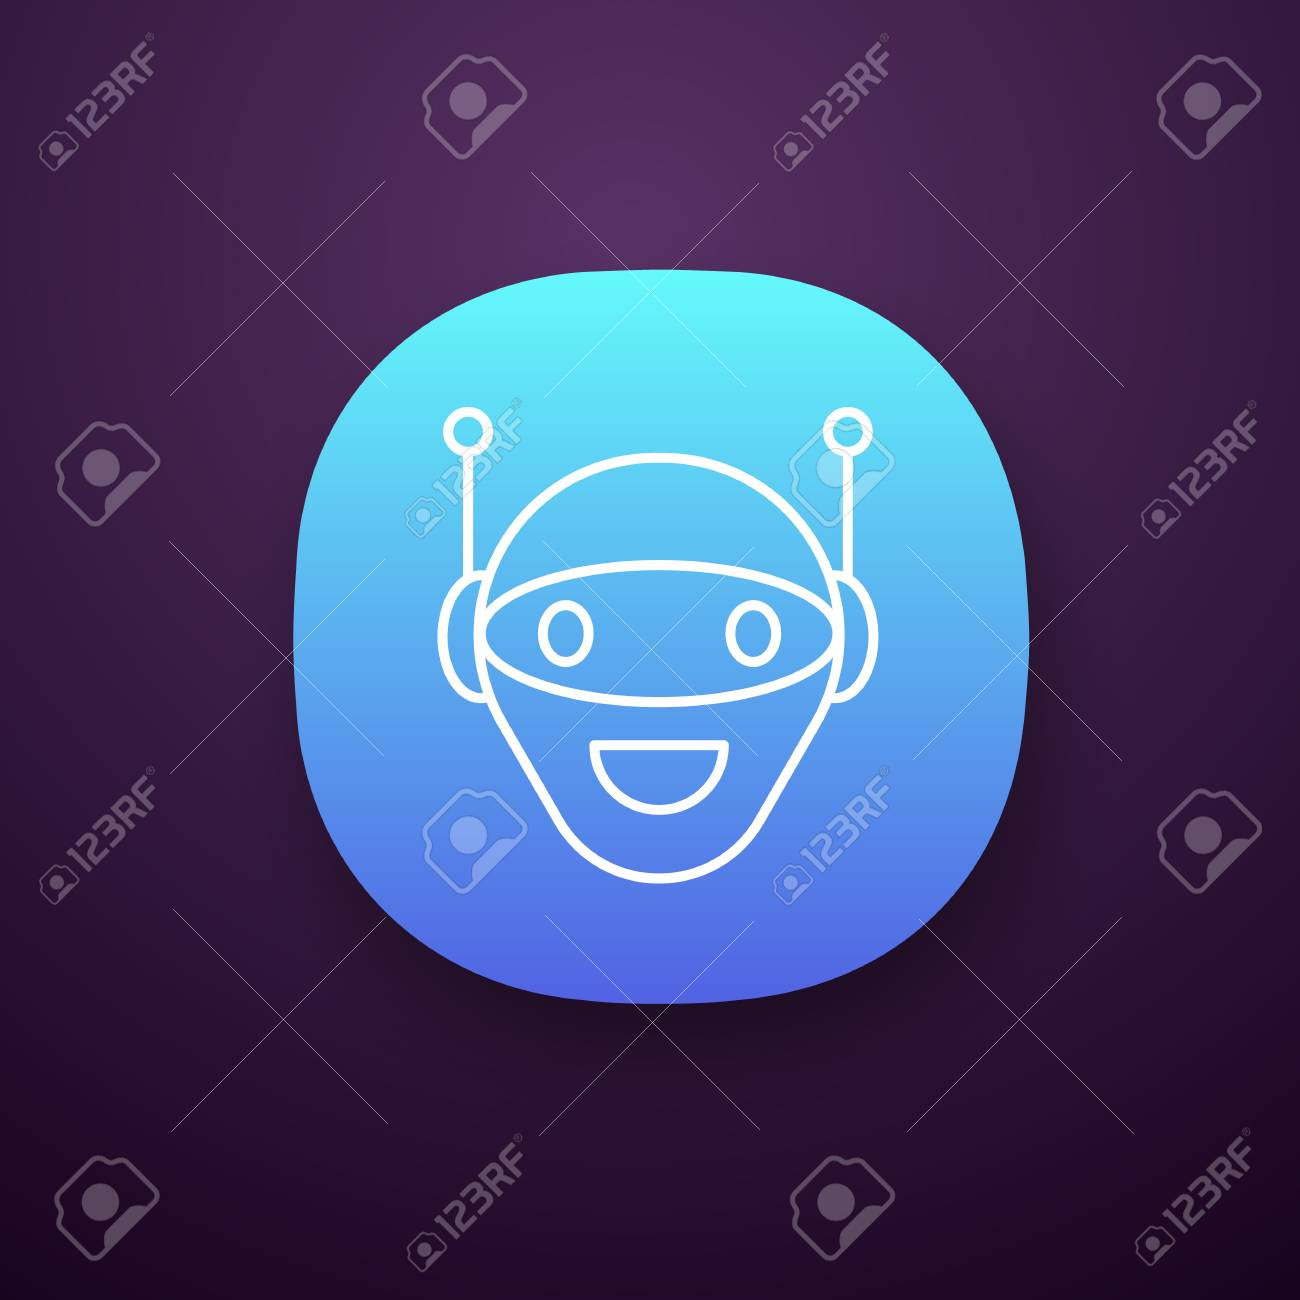 Chatbot app icon  UI/UX user interface  Talkbot  Modern robot